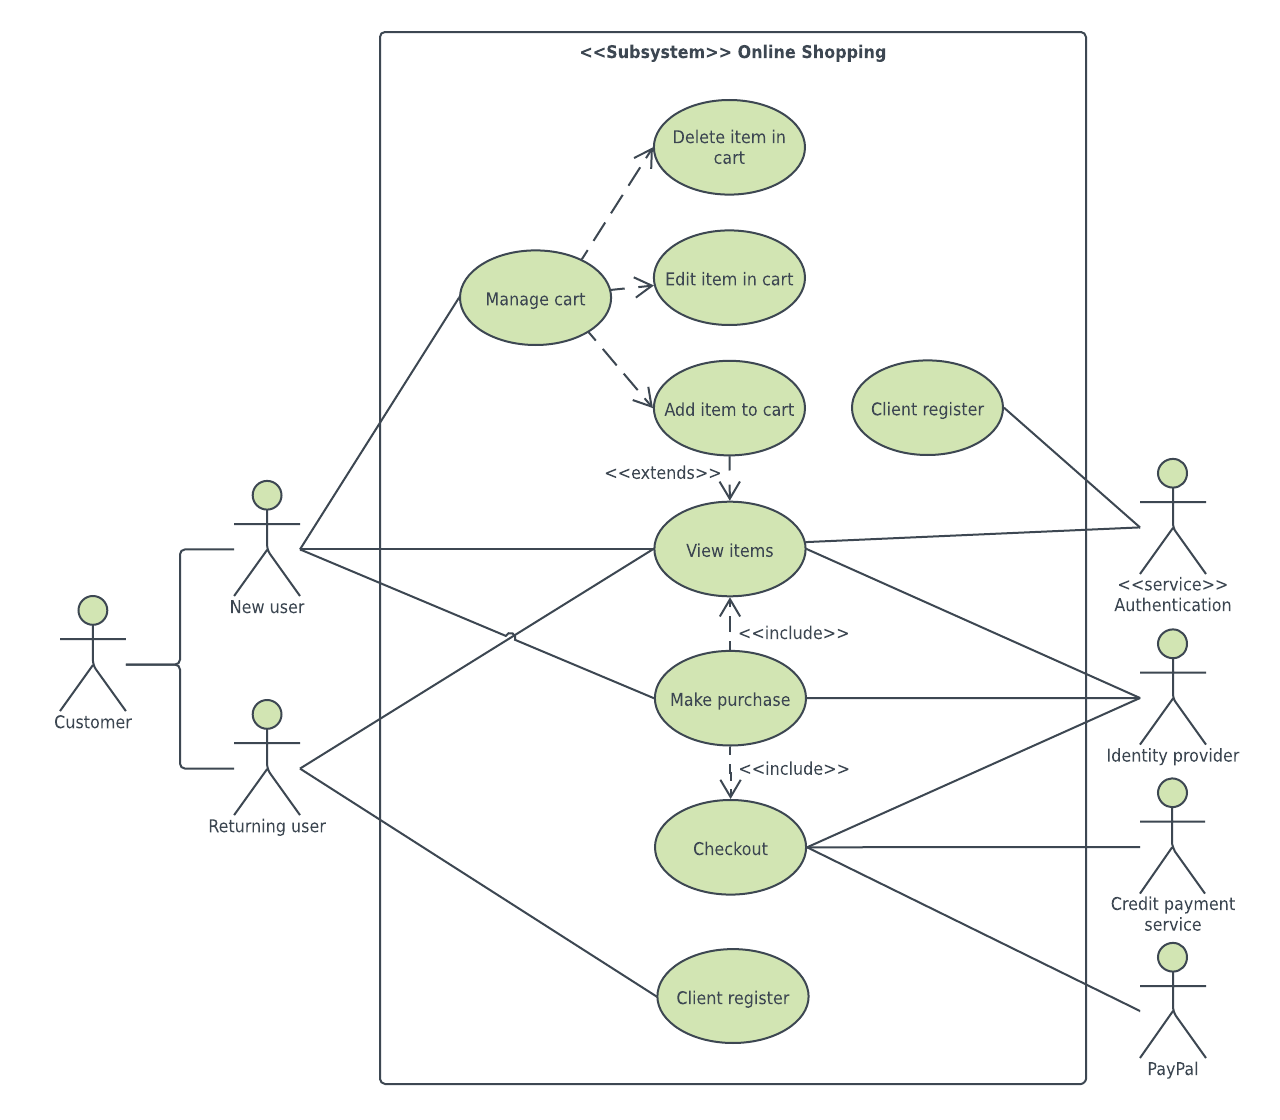 UML Diagram Templates and Examples | Lucidchart Blog